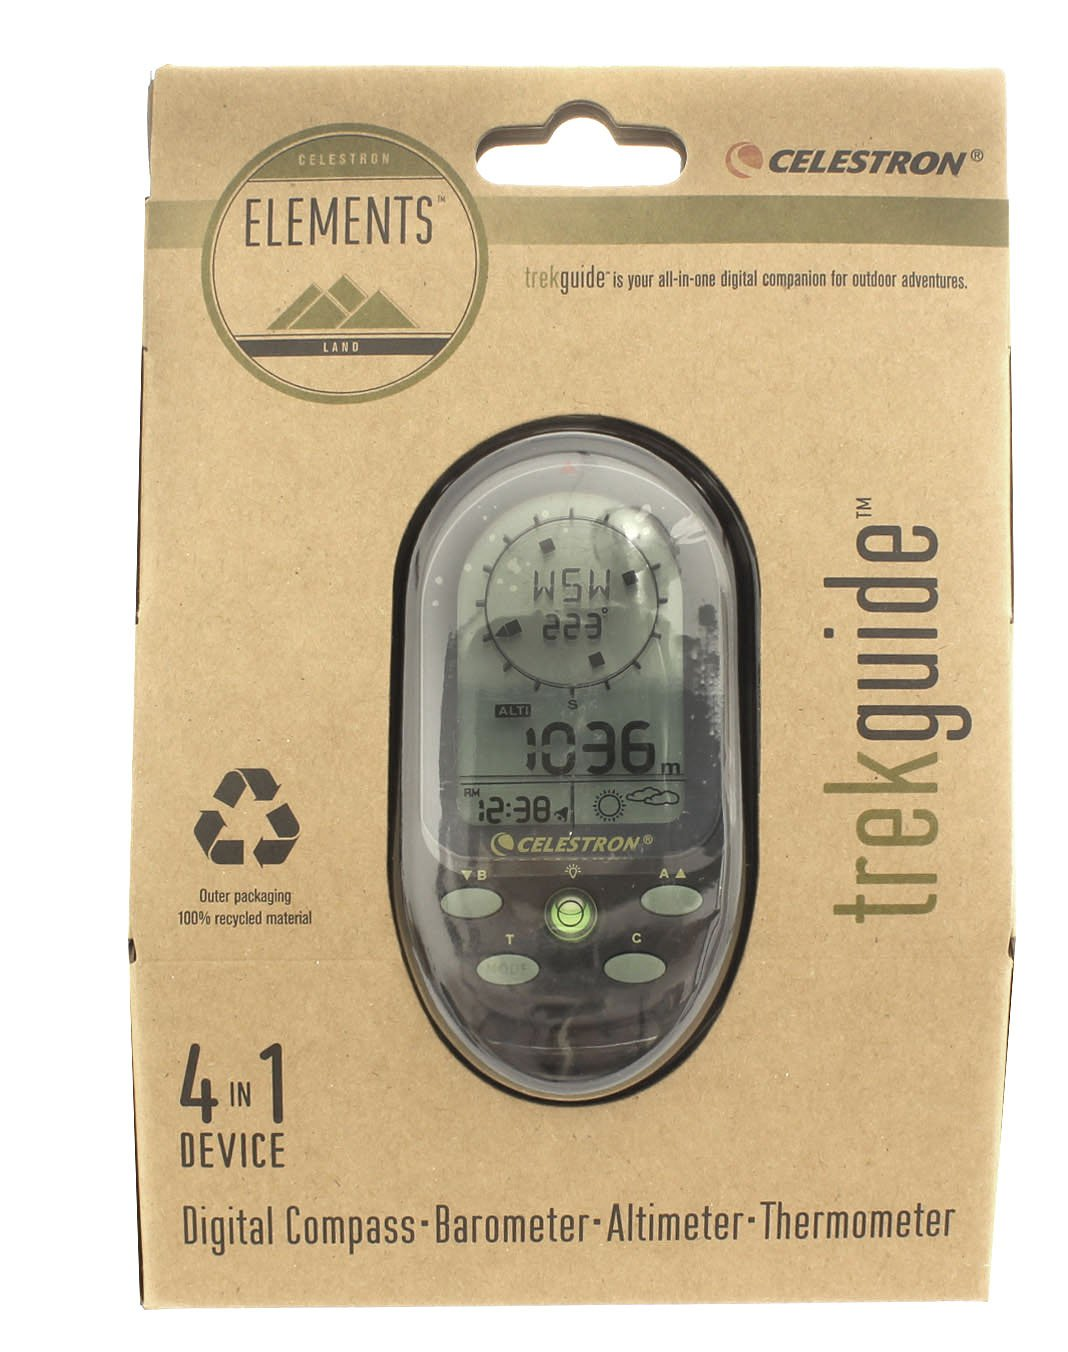 Barometer Altimeter and Thermometer with Lanyard and Wrist Strap Celestron Elements TrekGuide 4-in-1 Digital Compass